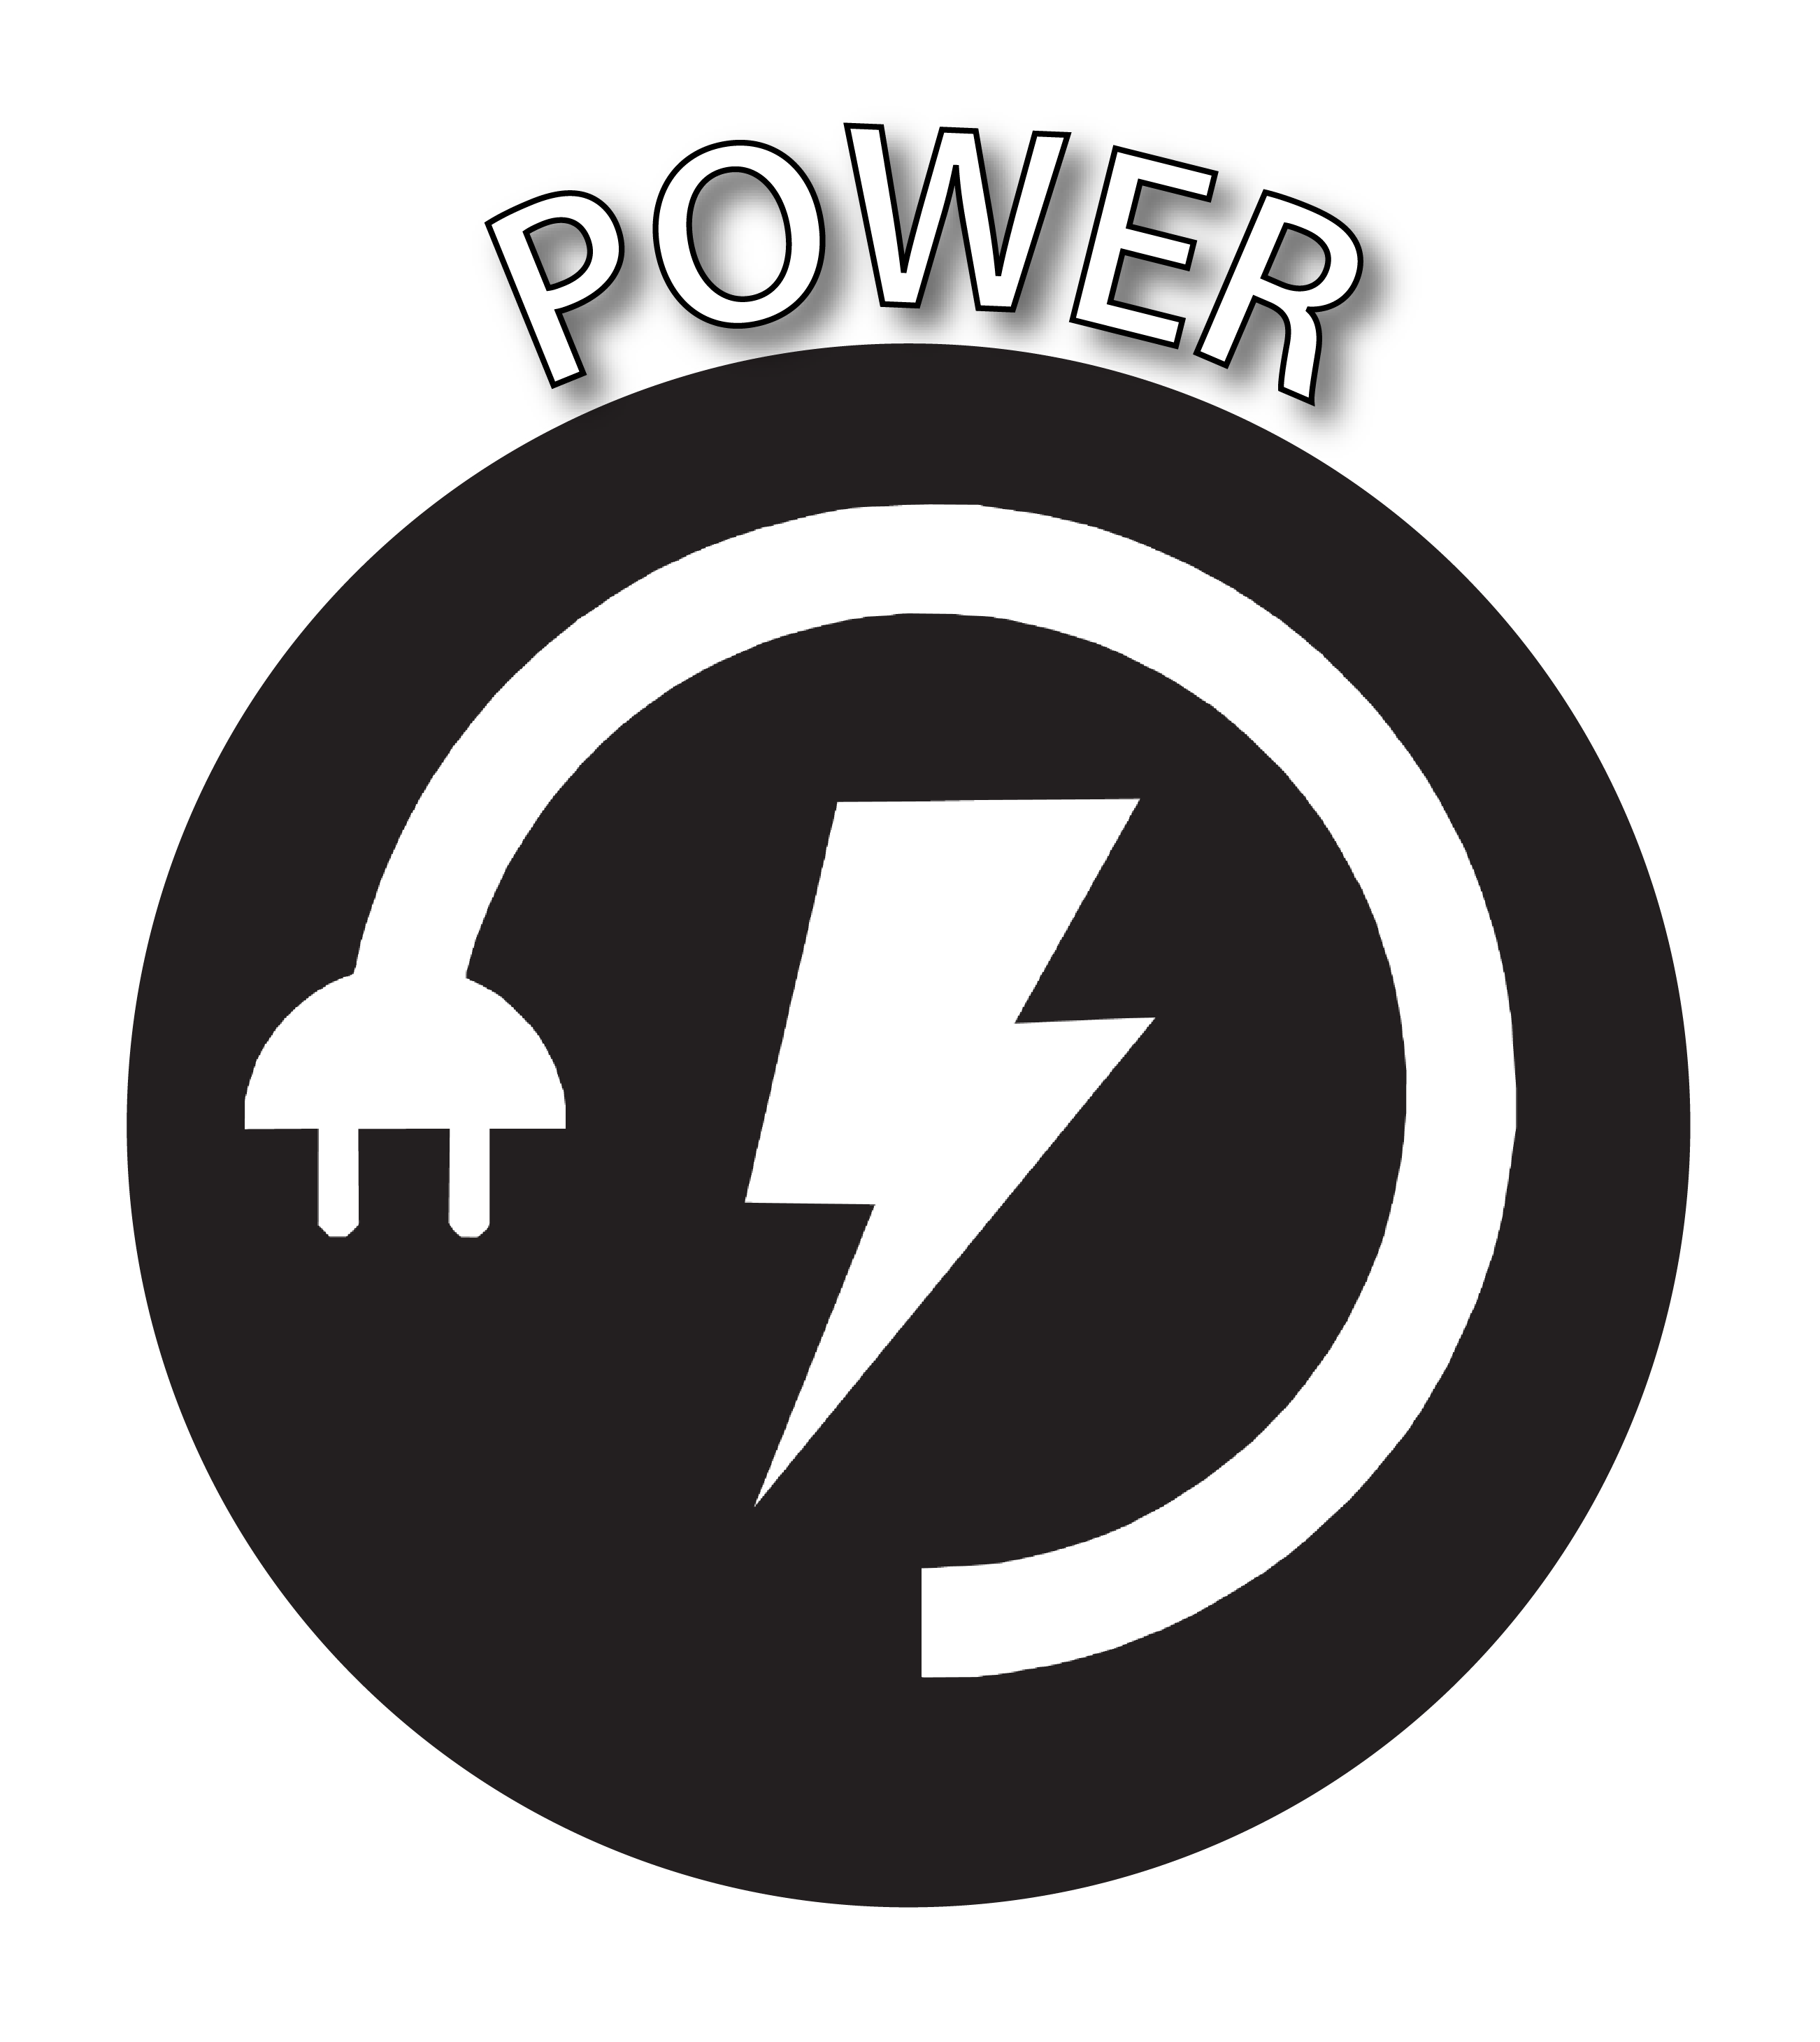 Power png. Te subscribe